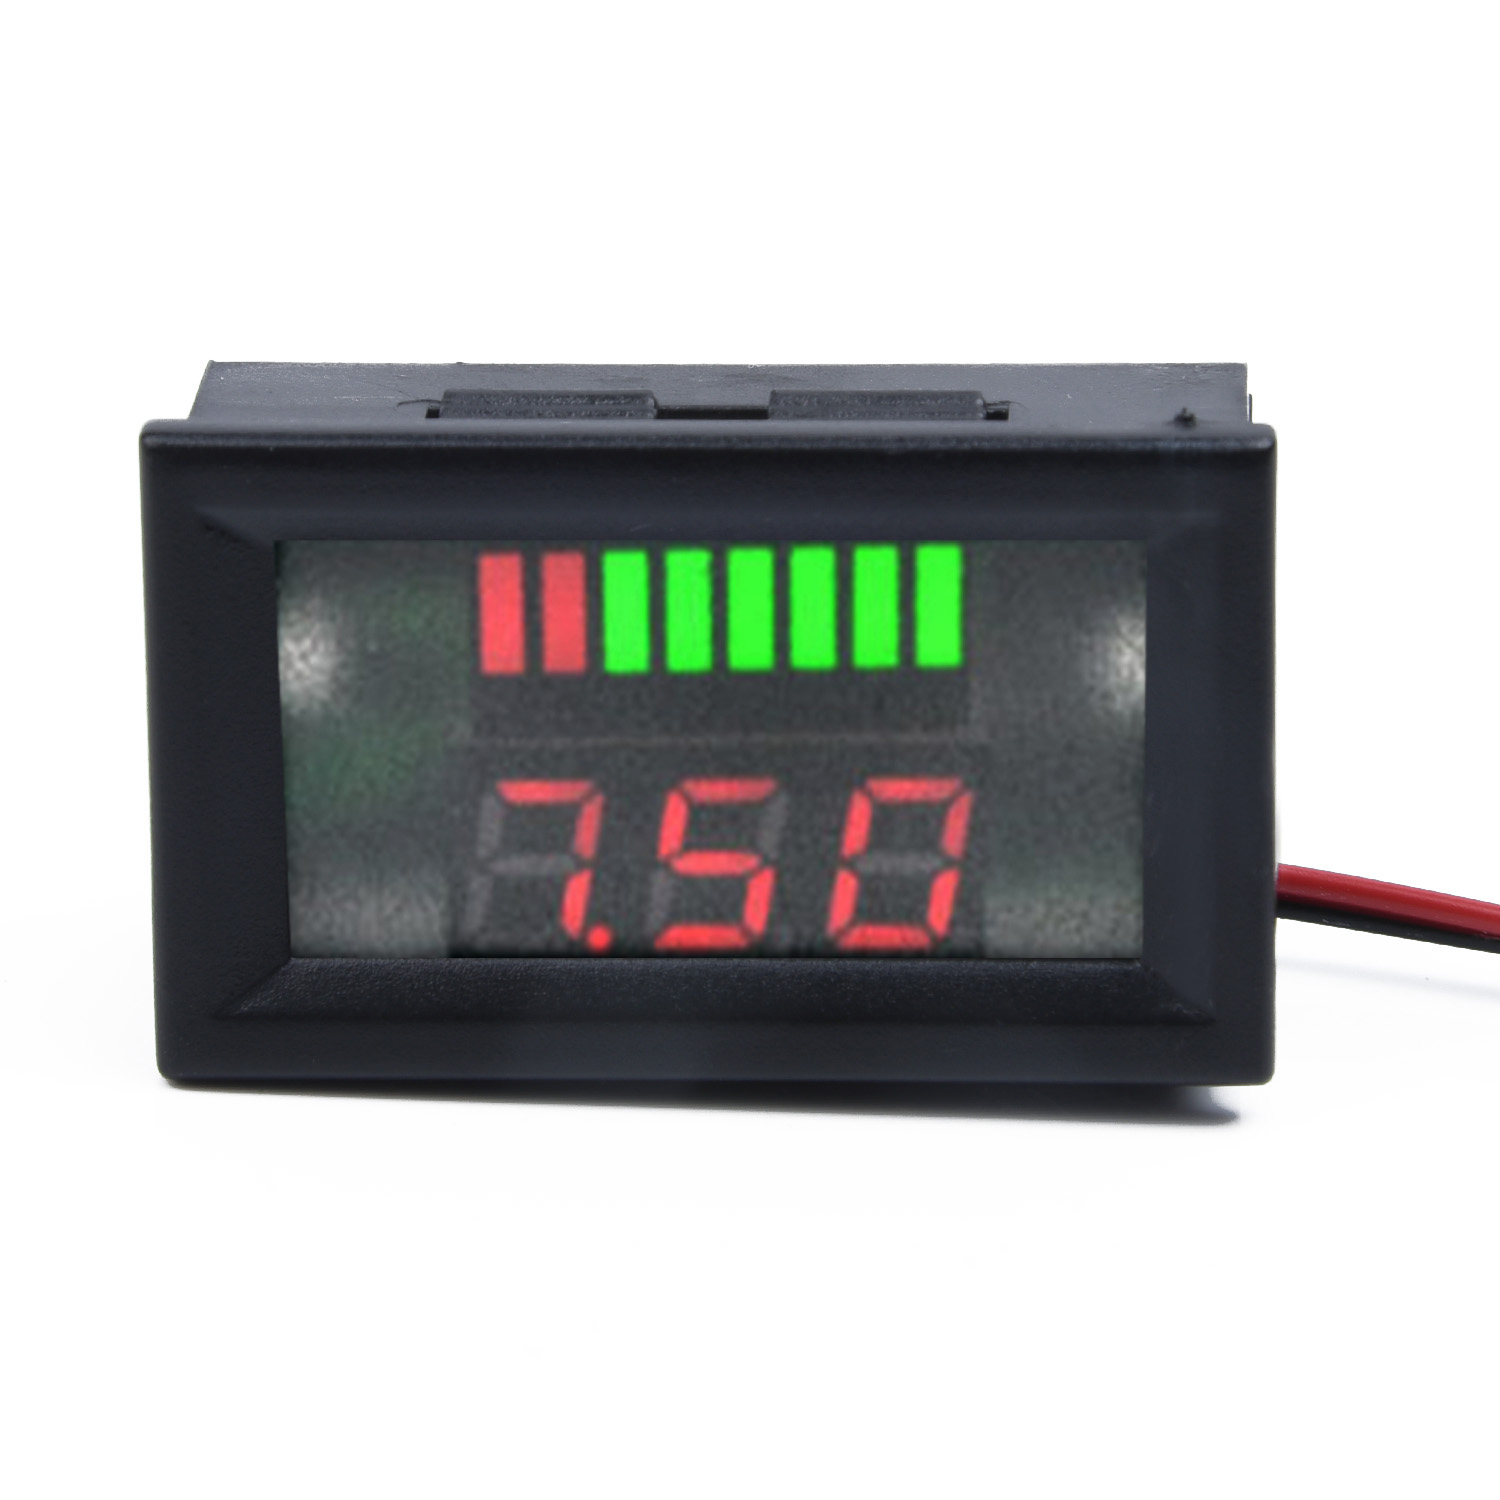 Mini 12v Led Waterproof Display Voltmeter Motorcycle Voltage Gauge Panel Meter